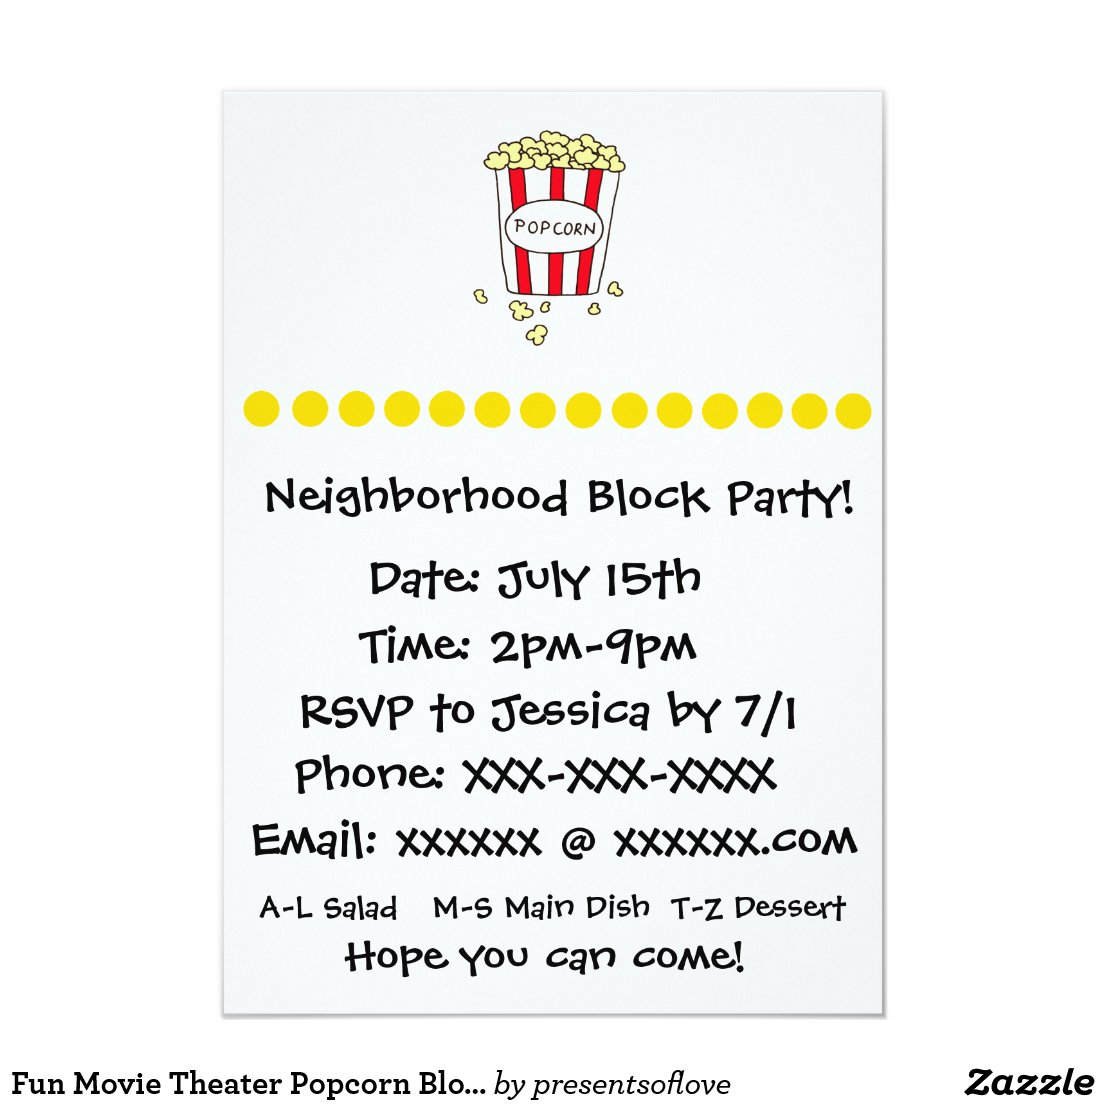 Fun Movie Theater Popcorn Block Party Invite